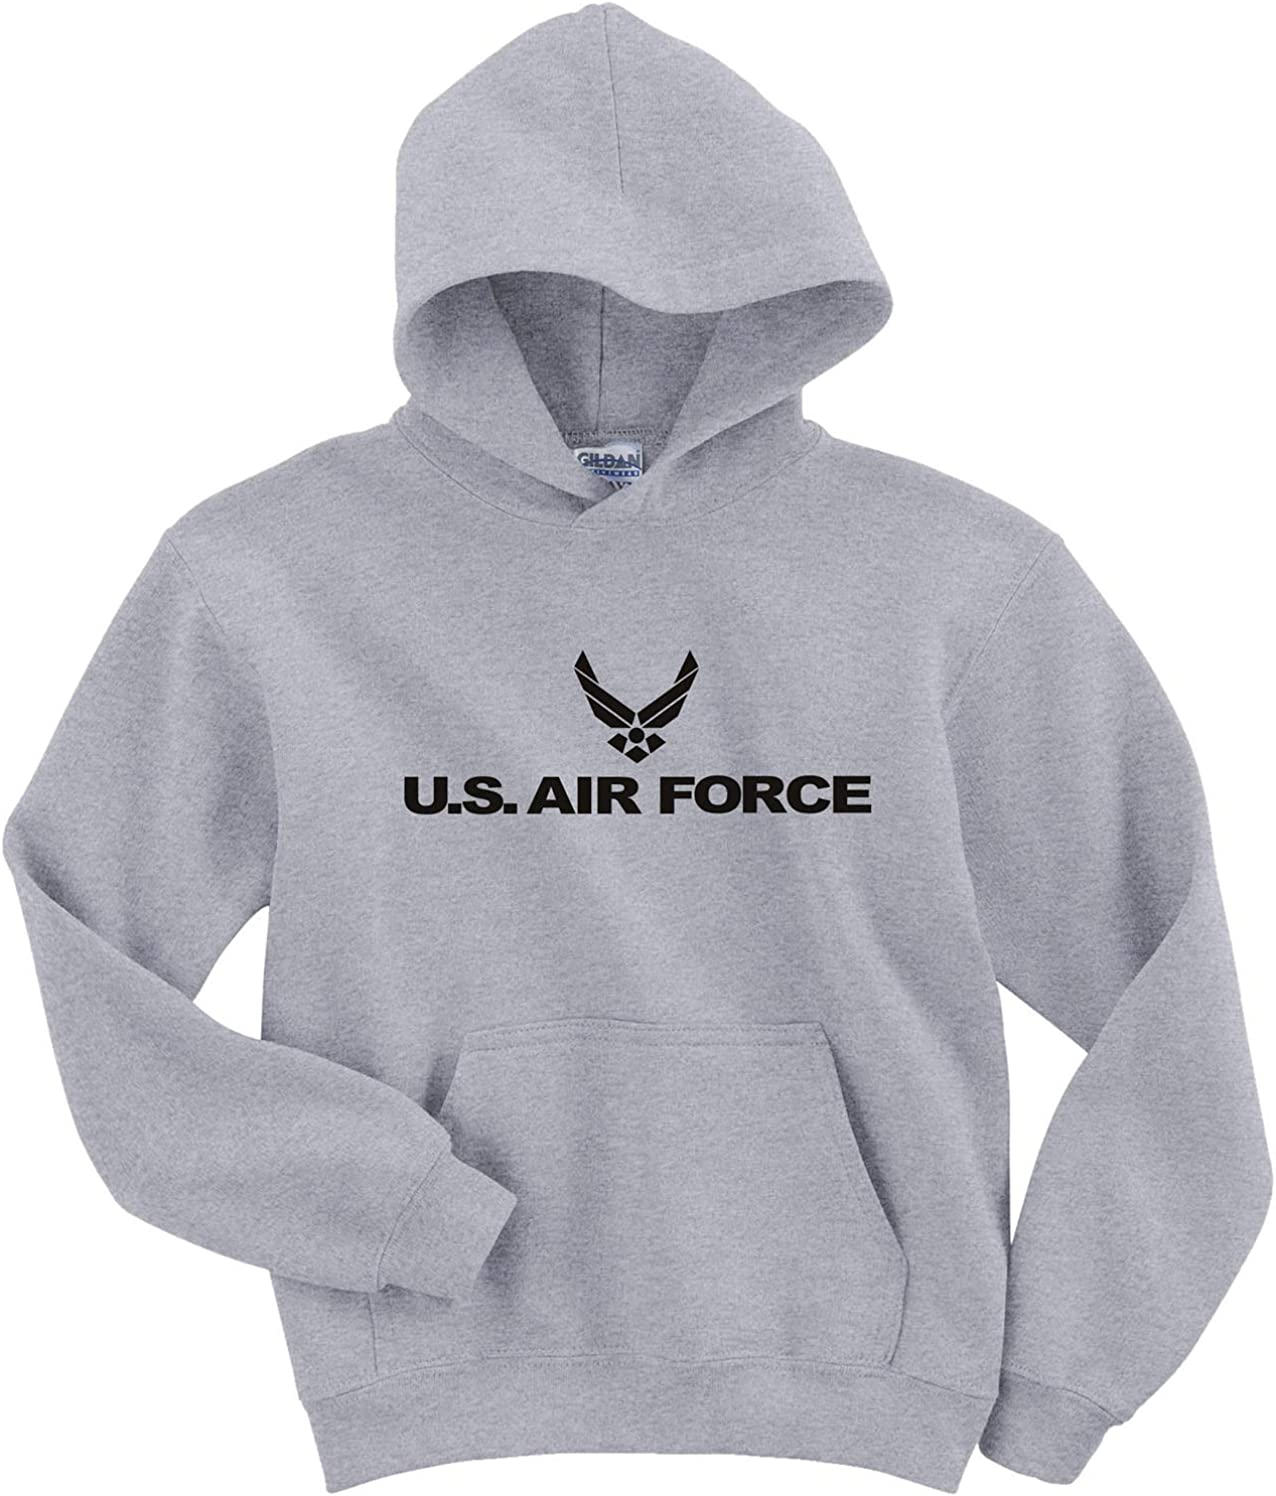 Youth Air Force Hooded Gray Sweatshirt Popular brand in the world in Excellent